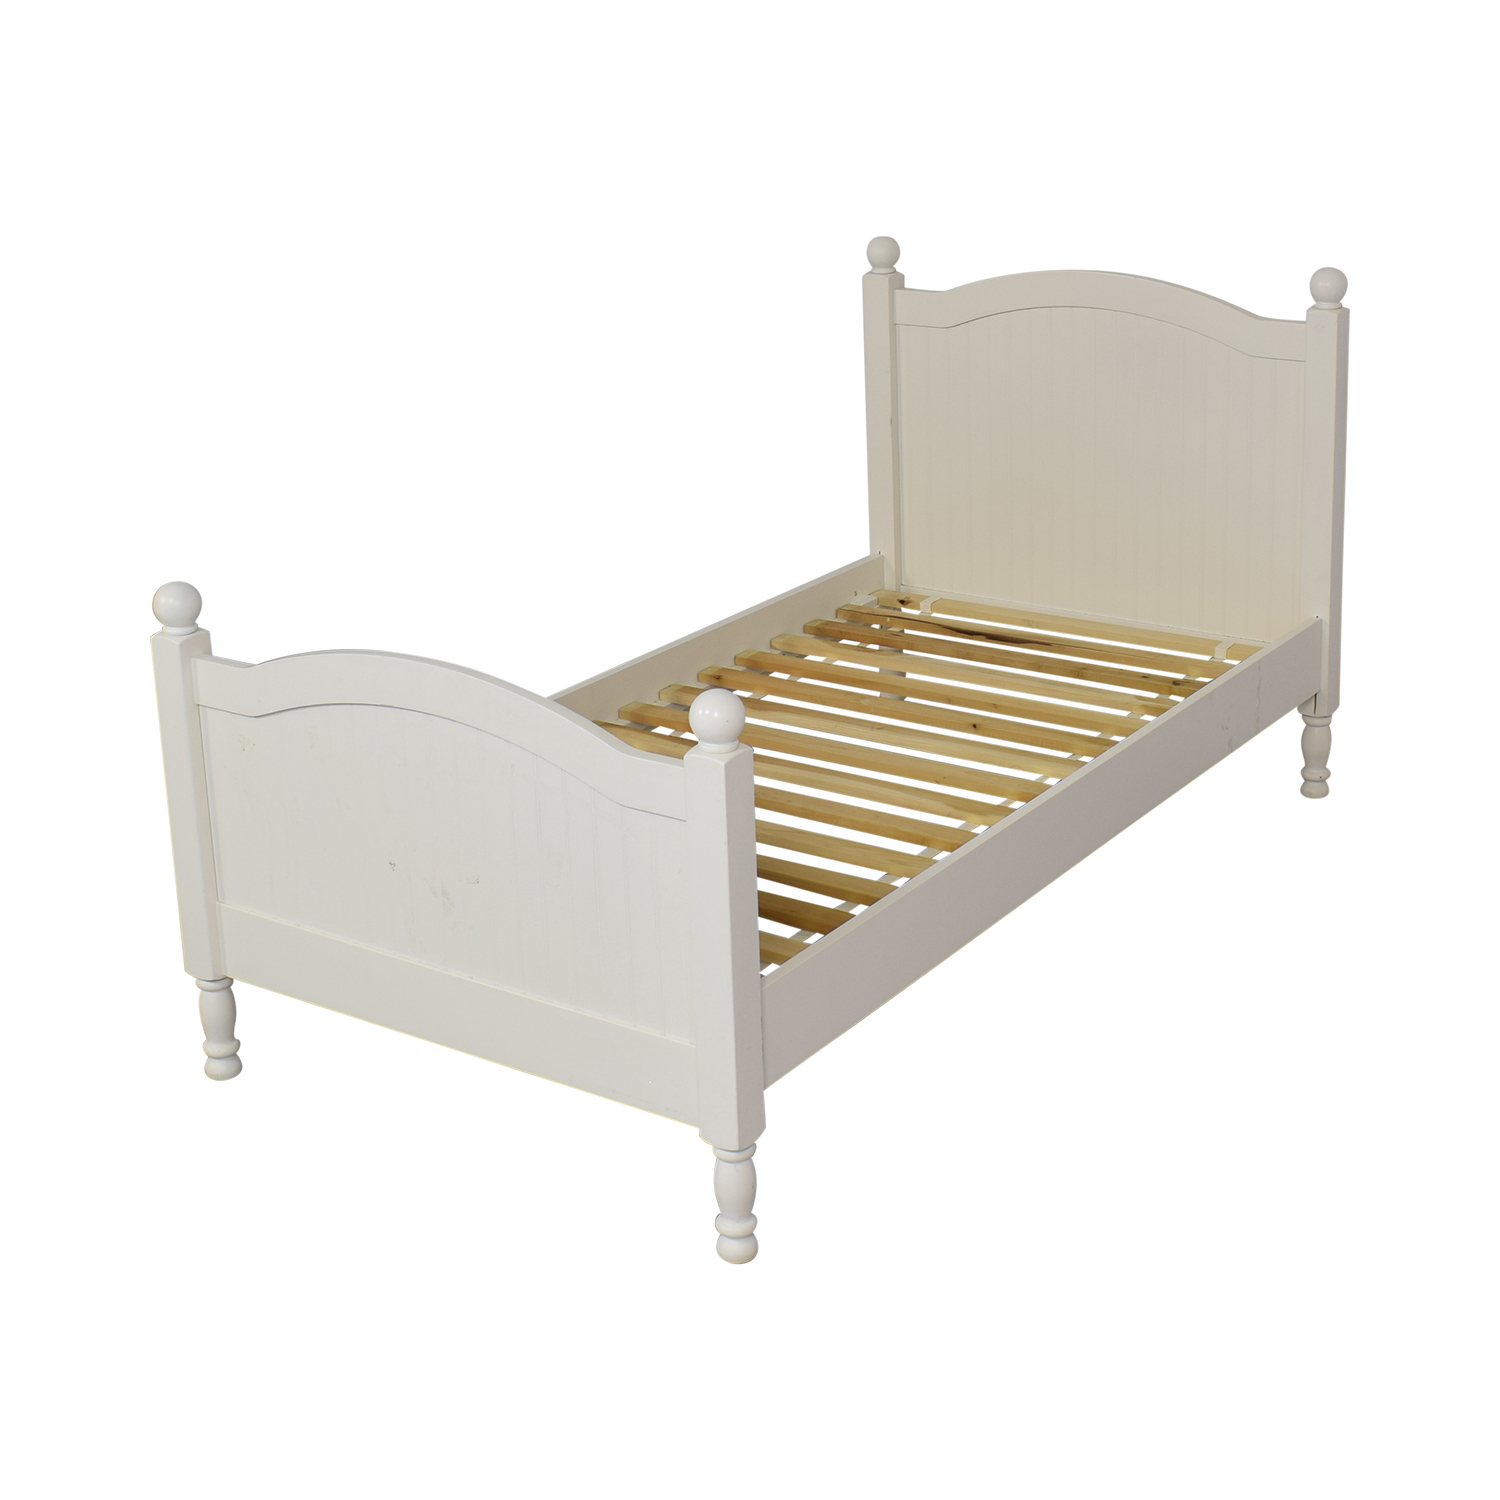 Pottery Barn Kids Pottery Barn Kids Catalina Twin Bed Simply White Beds